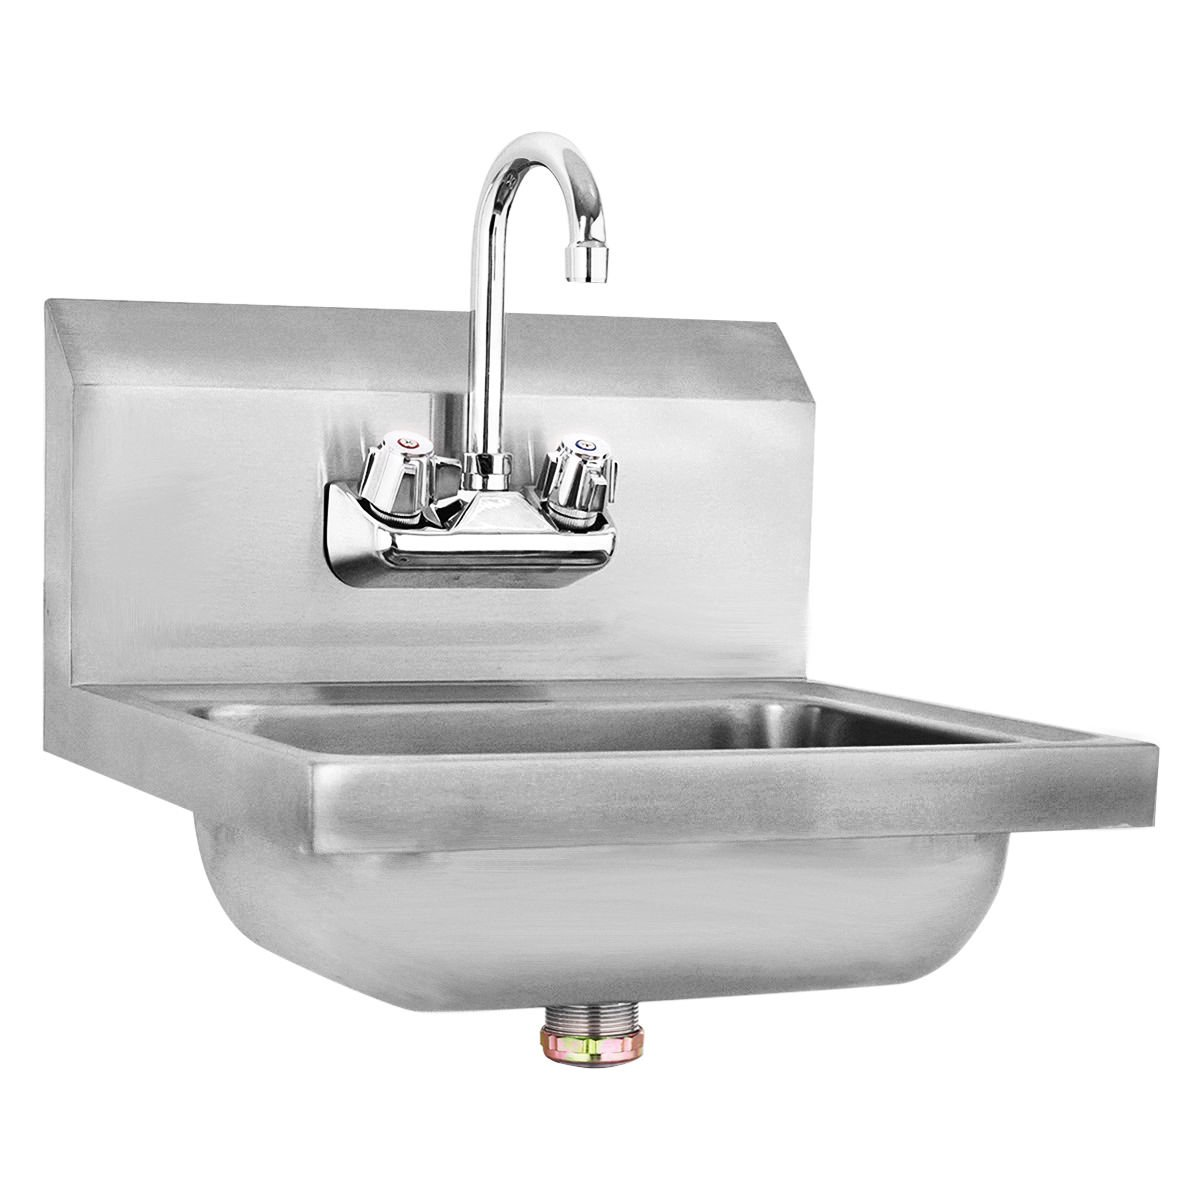 Giantex Stainless Steel Hand Wash Sink Wall Mount Commercial Kitchen Heavy Duty With Faucet by Giantex (Image #1)